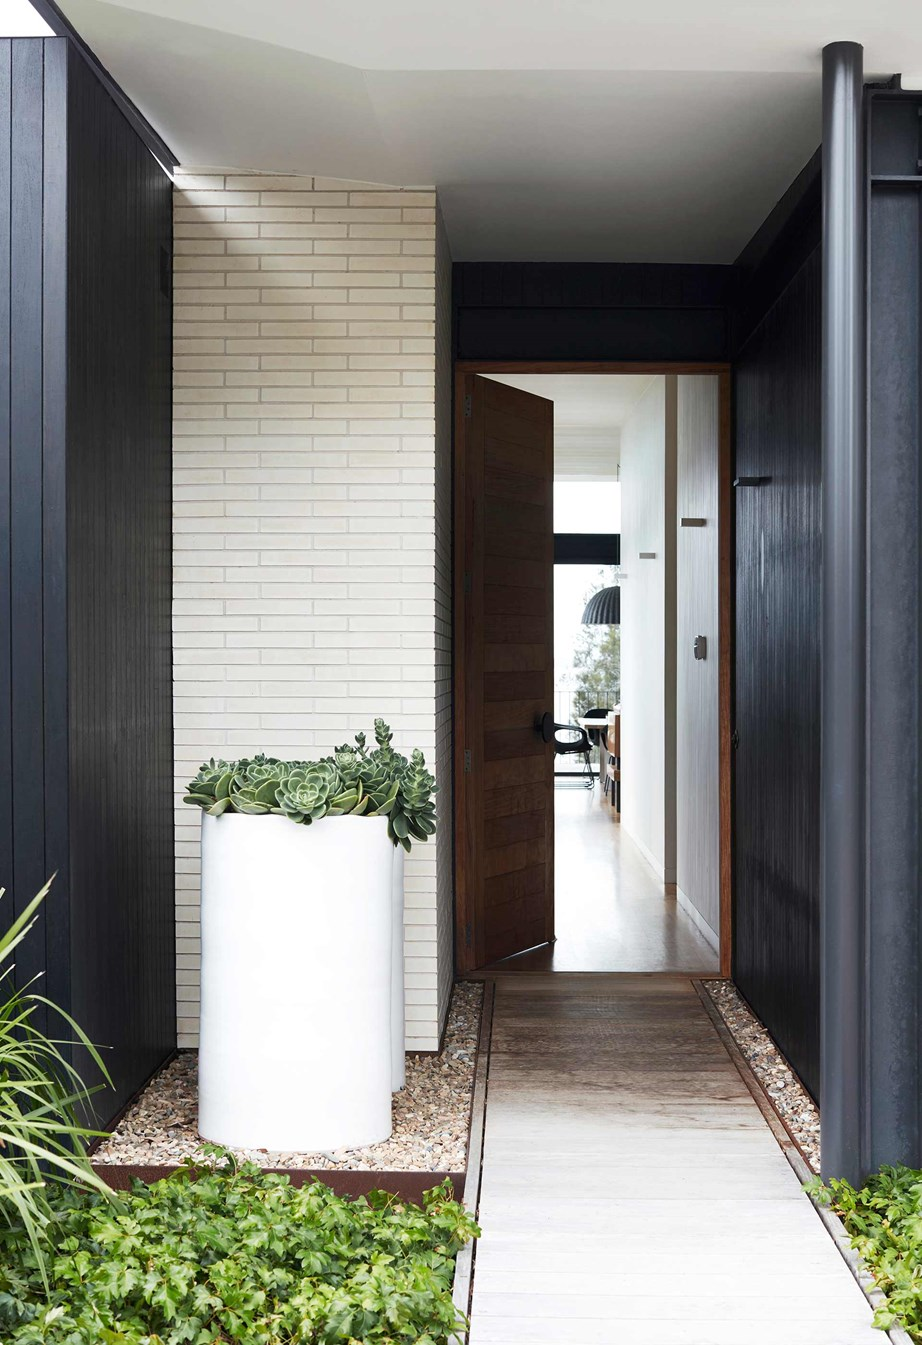 "Mid-century style continues to shape many modern homes built today. Take this [modernist inspired contemporary holiday home](https://www.homestolove.com.au/contemporary-mid-century-holiday-home-19459|target=""_blank"") for example. From its steel and glass structure to the brick work and timber panelling, it's clear this modern home borrows heavily from classic mid-century design."